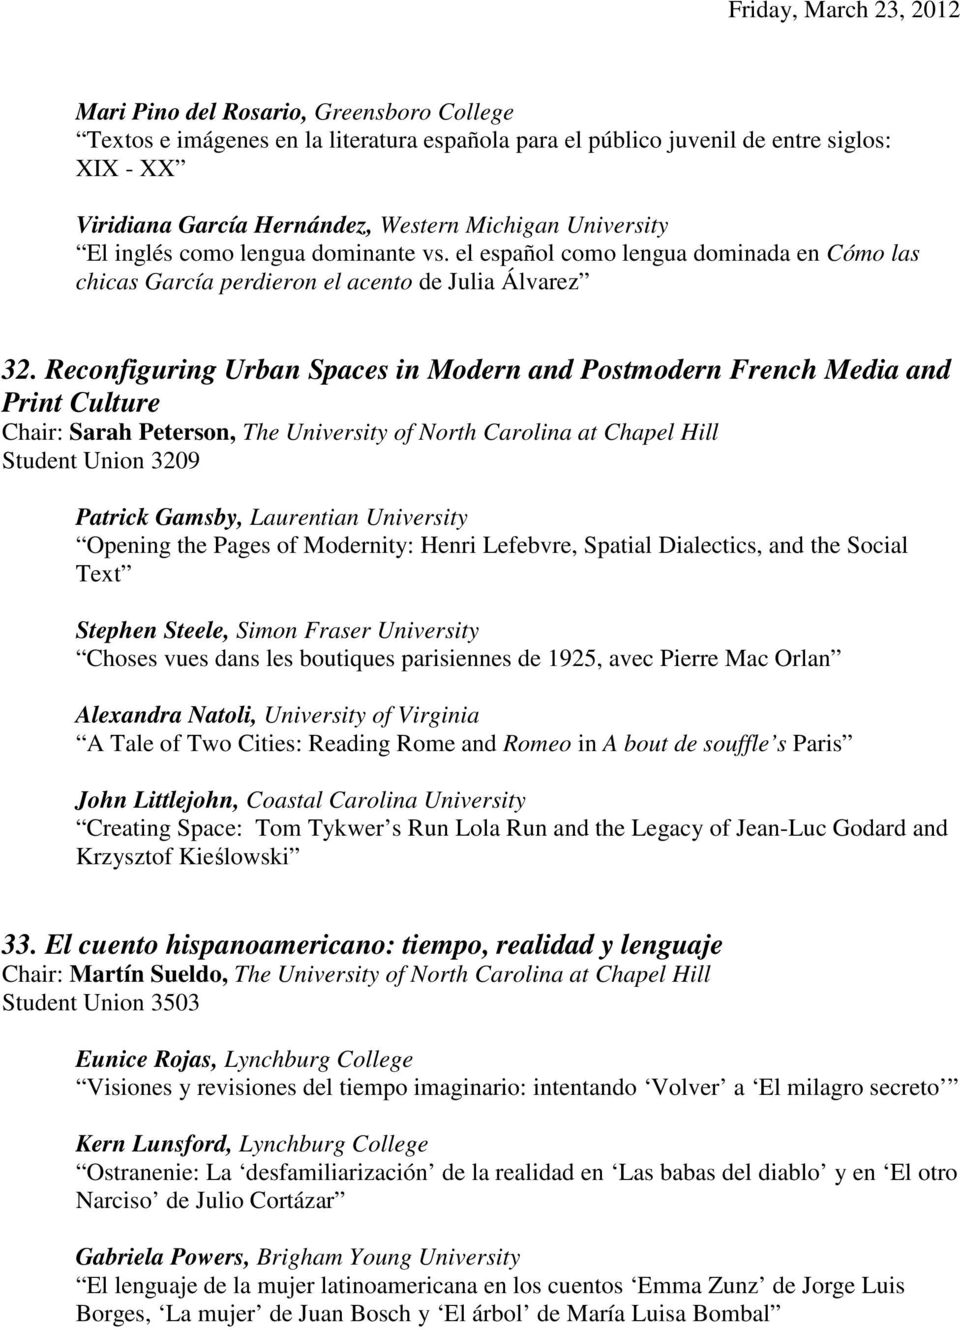 Reconfiguring Urban Spaces in Modern and Postmodern French Media and Print Culture Chair: Sarah Peterson, The University of North Carolina at Chapel Hill Student Union 3209 Patrick Gamsby, Laurentian